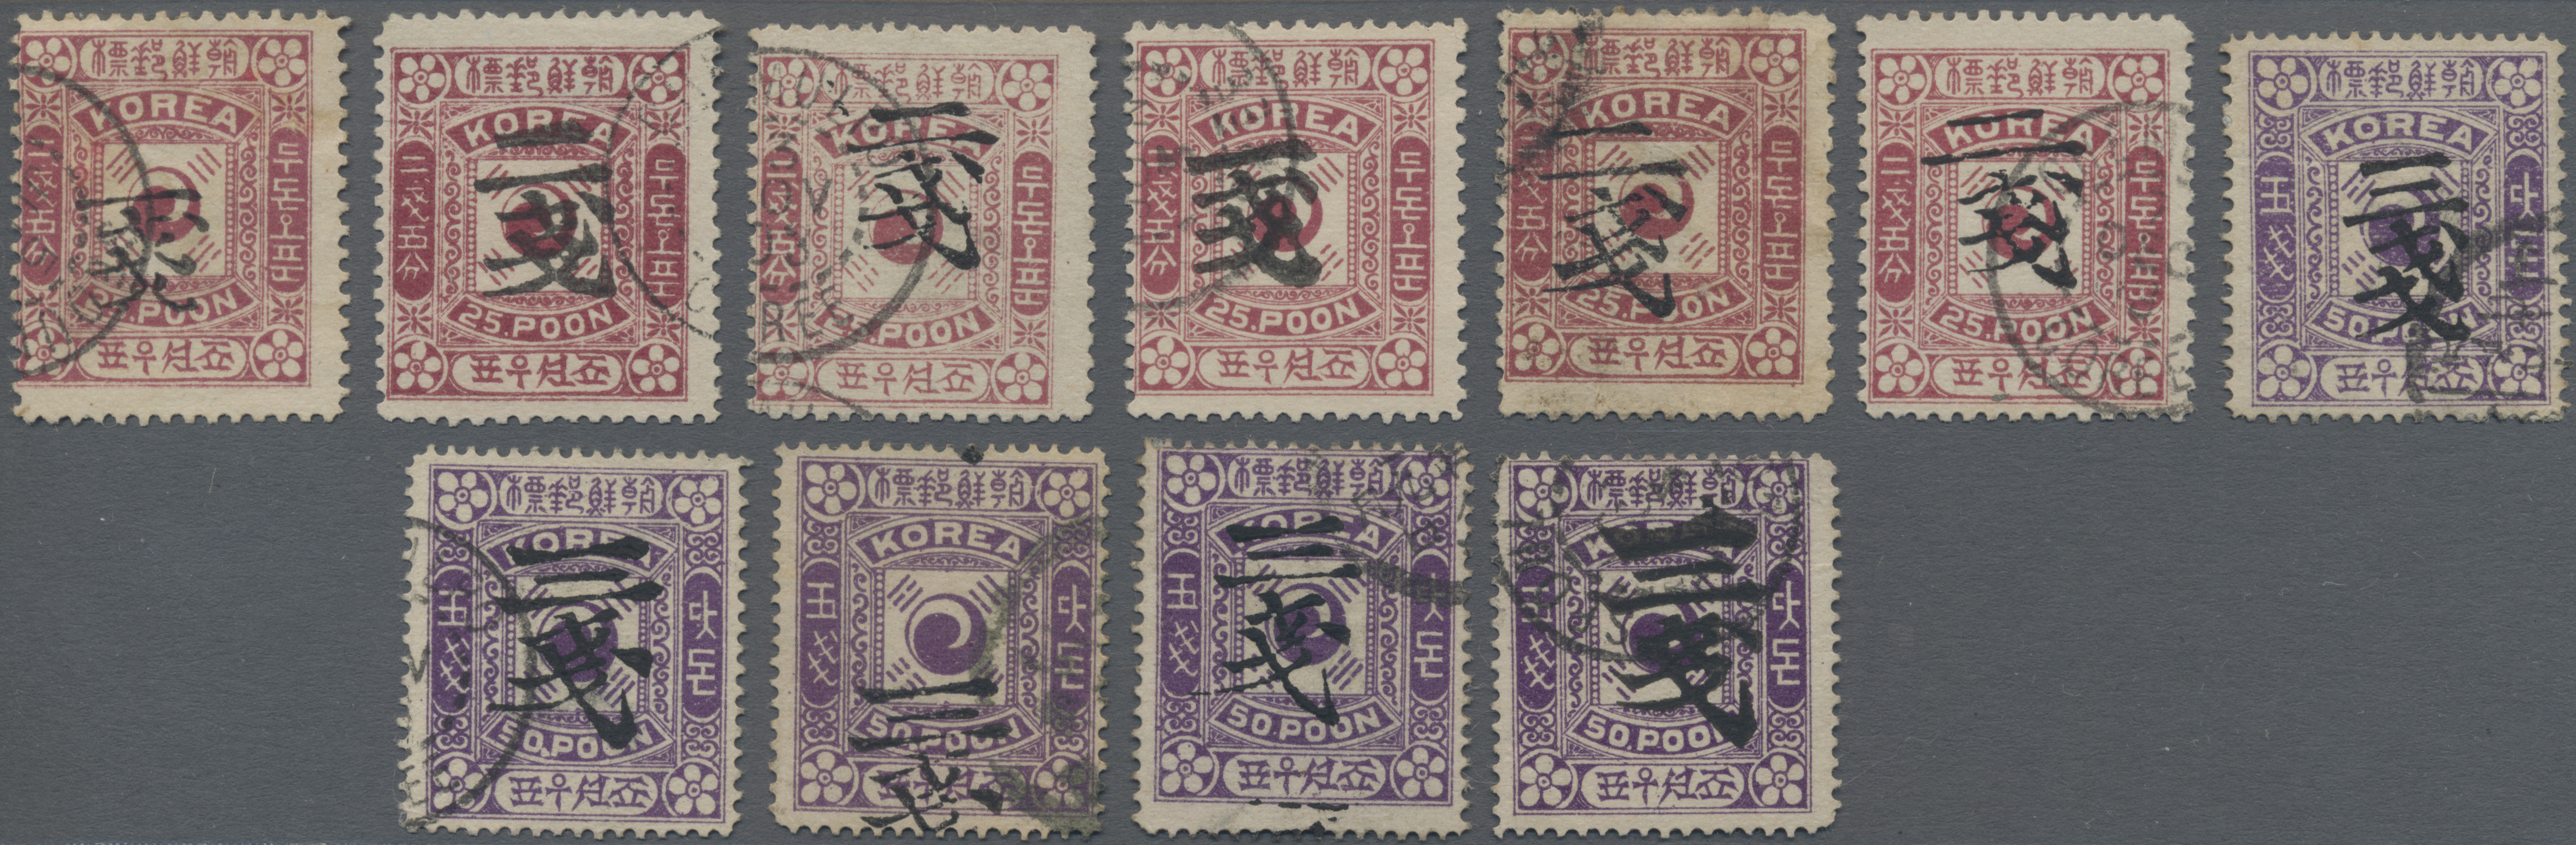 Lot 13845 - korea  -  Auktionshaus Christoph Gärtner GmbH & Co. KG Sale #48 collections Overseas  Airmail / Ship mail & Thematics